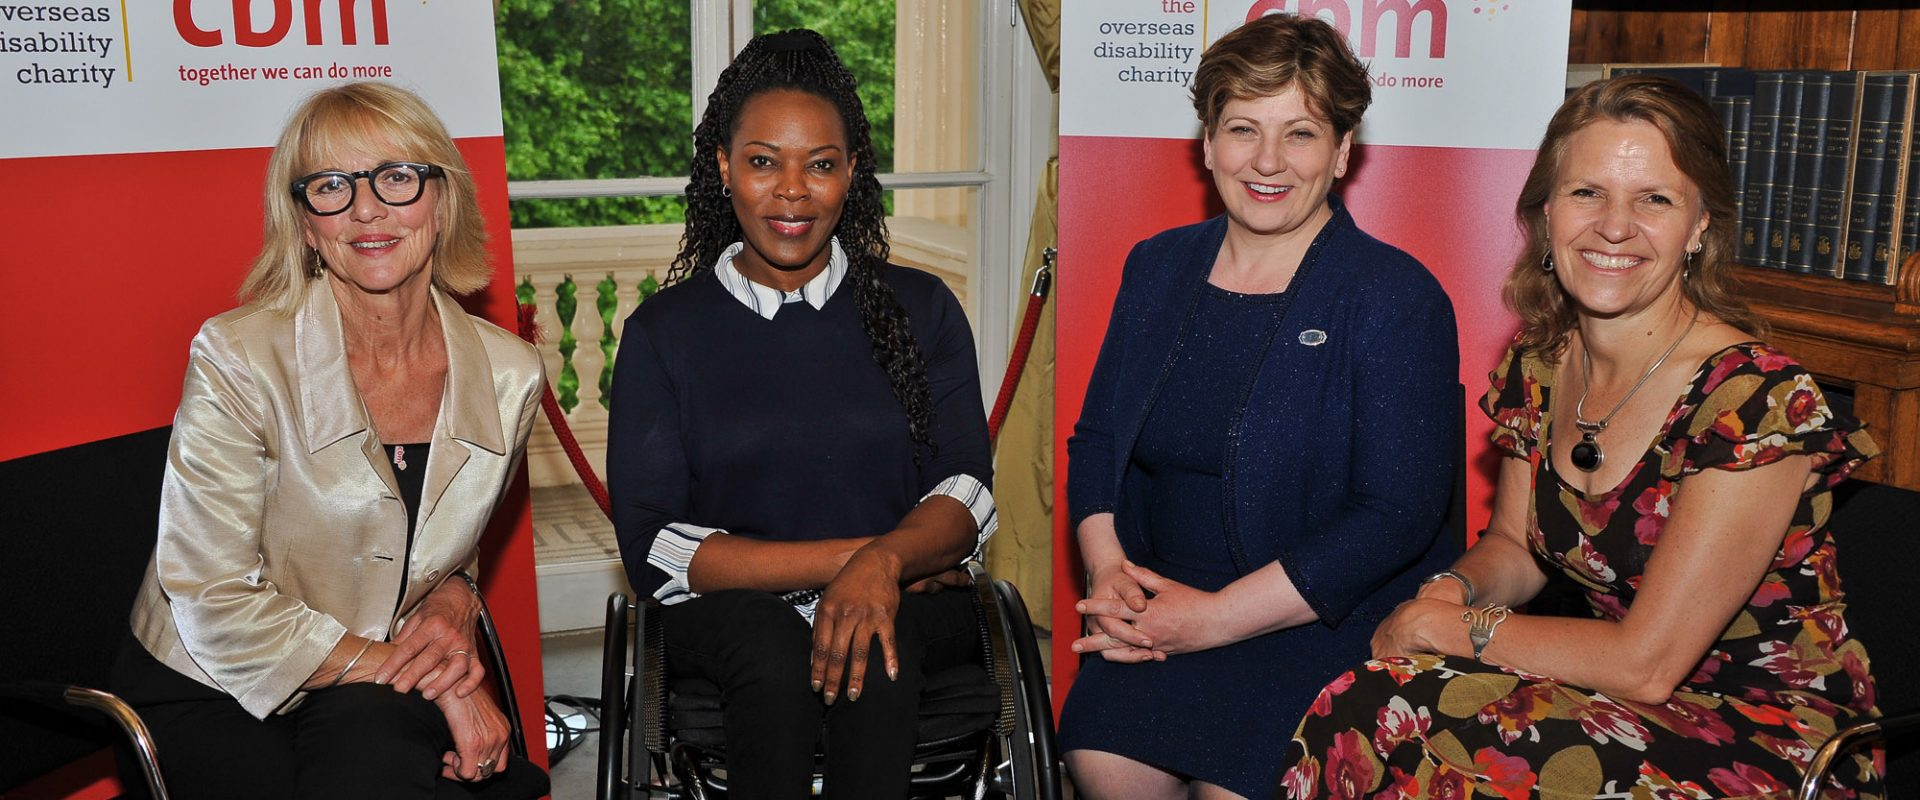 CBM Champions Trudie Goodwin and Anne Wafula-Strike with Rt. Hon. Emily Thornberry MP and CBM UK Chief Executive Kirsty Smith